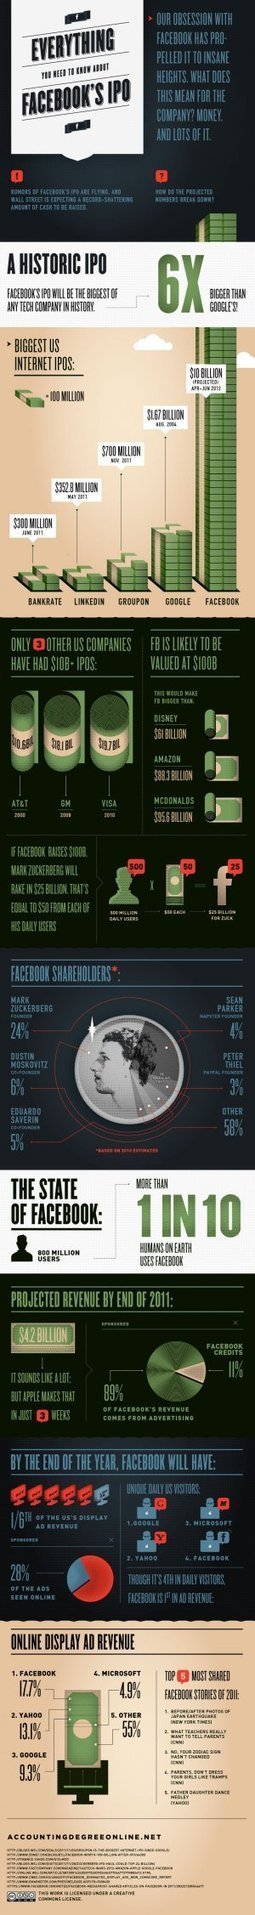 Everything you need to know about Facebook's potential IPO(infographic) | Entrepreneurship, Innovation | Scoop.it